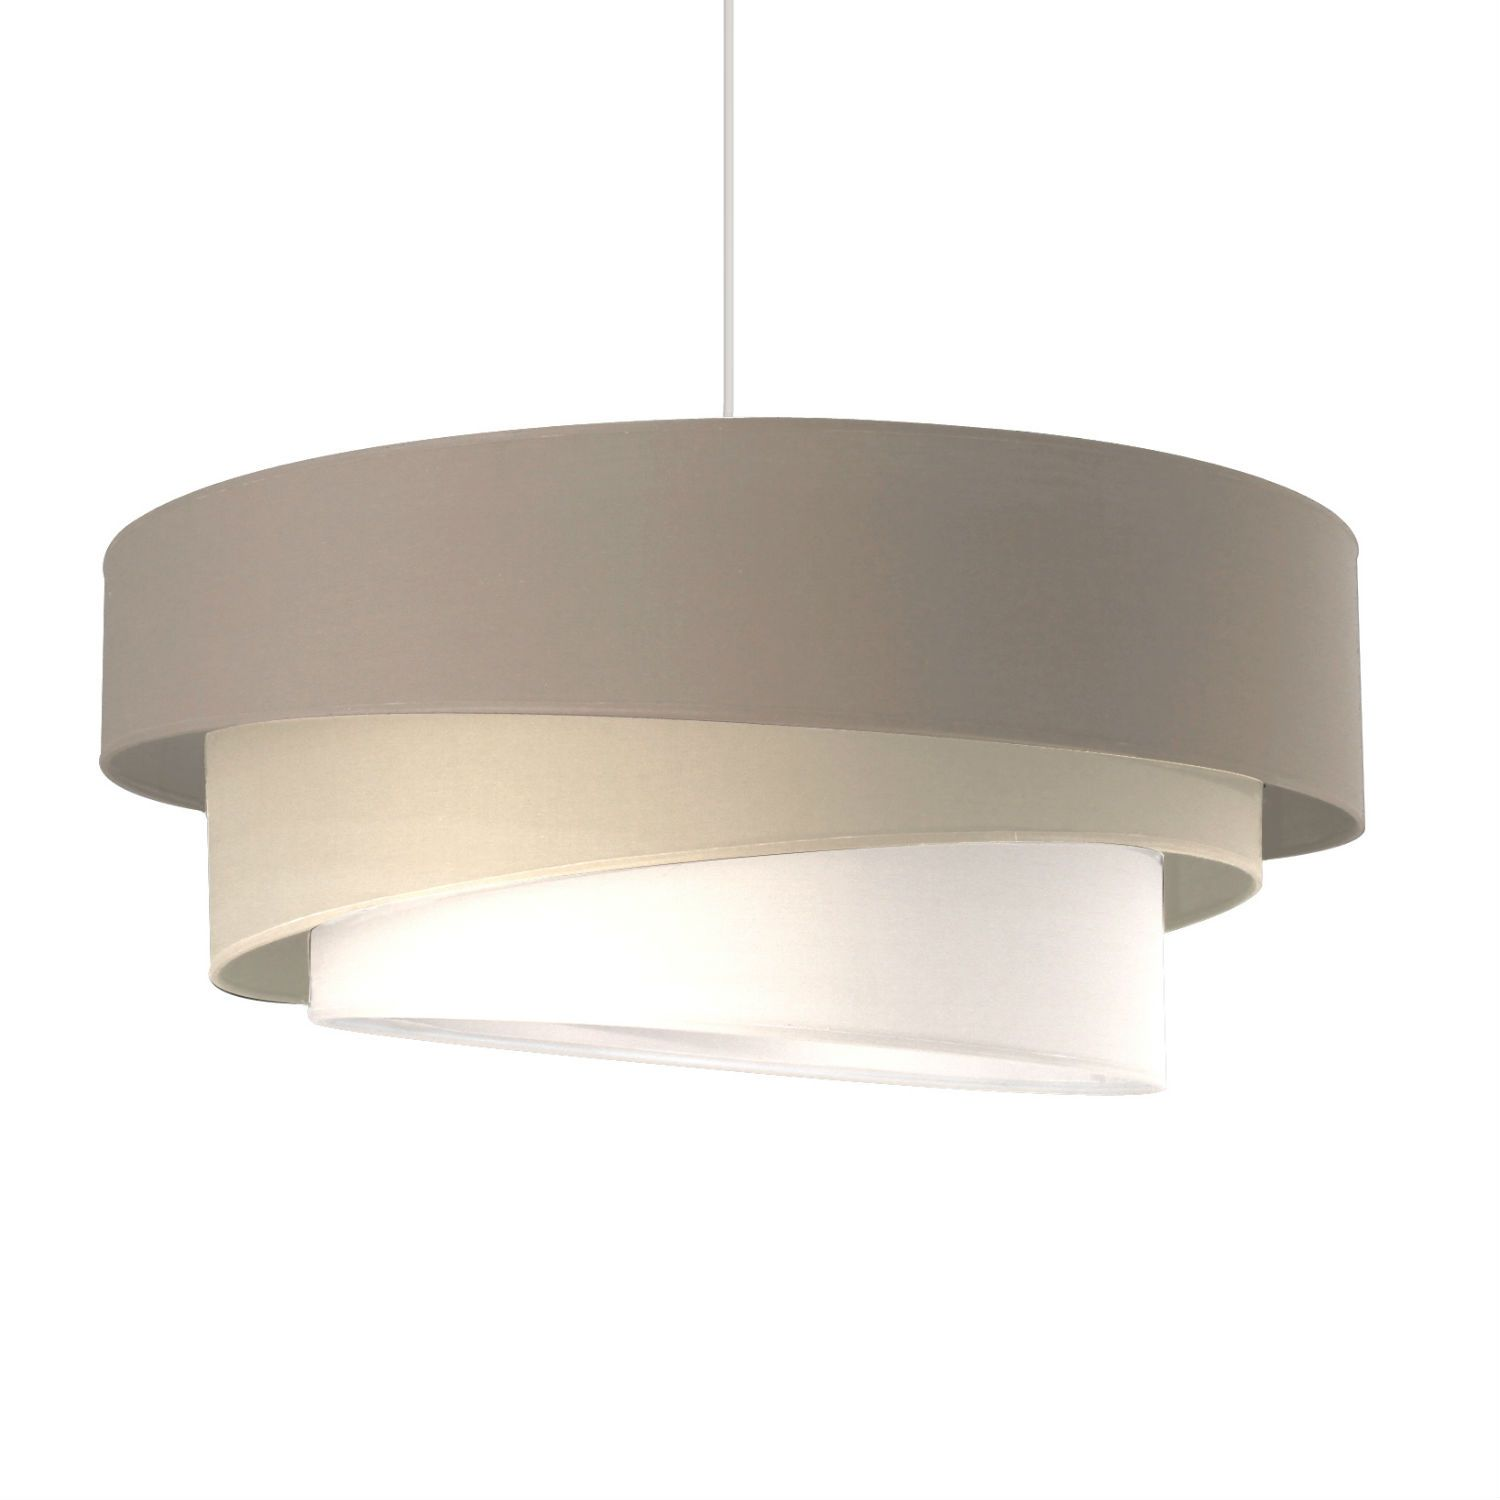 Suspension Taupe/Sable/Blanc Ø58cm - IONOS | Cylindre, Superpose ...